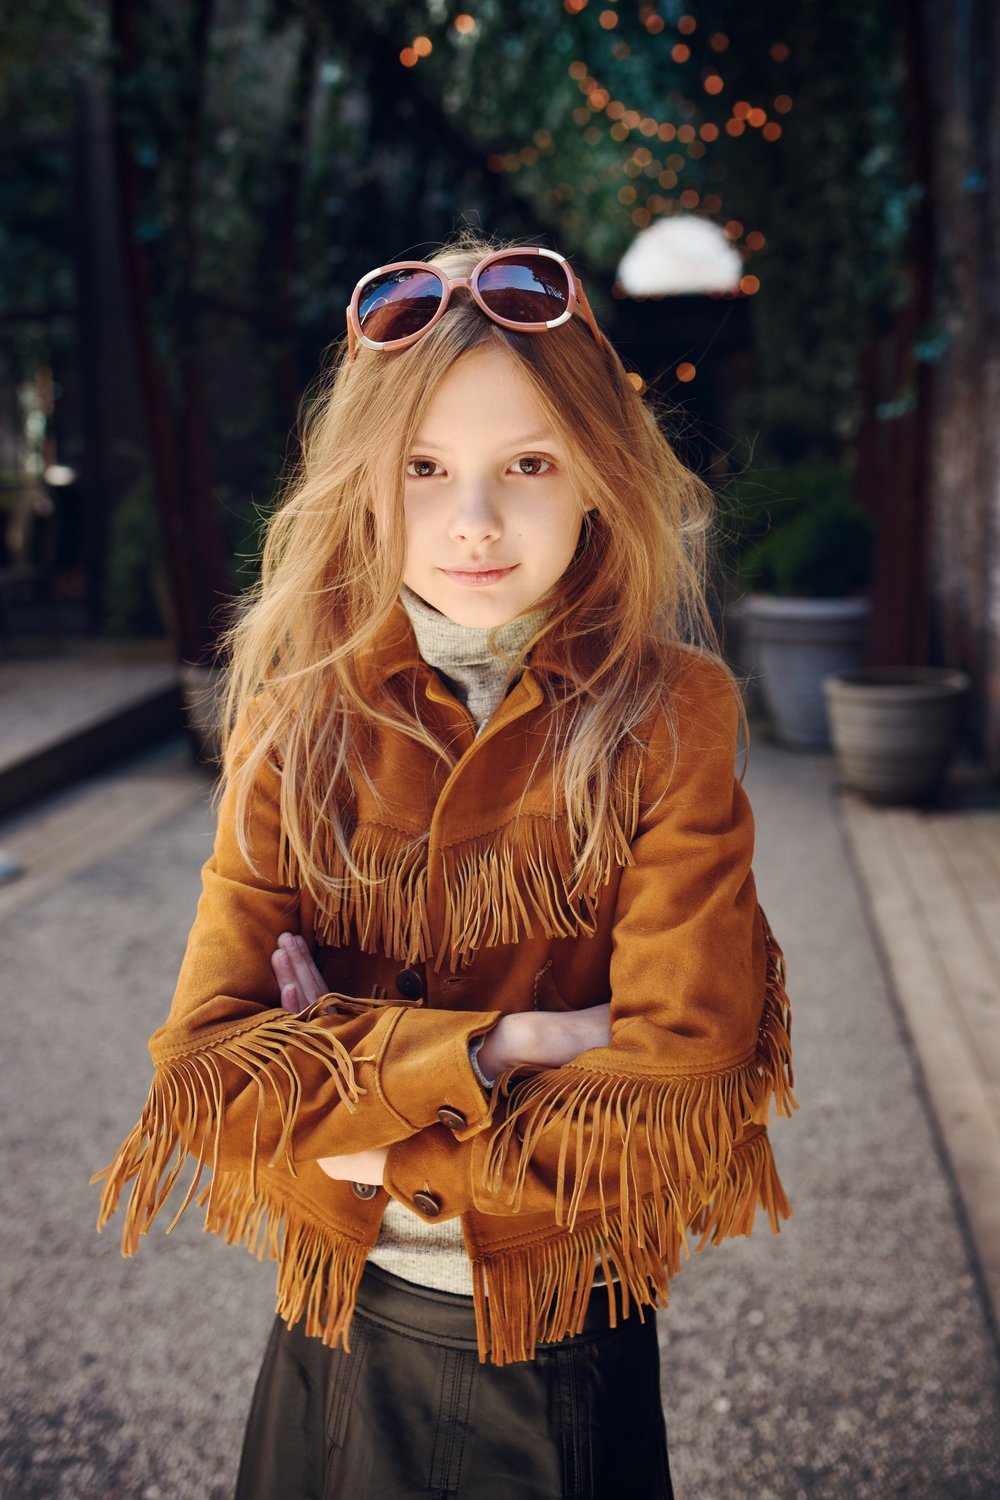 Enfant+Street+Style+by+Gina+Kim+Photography-22.jpeg